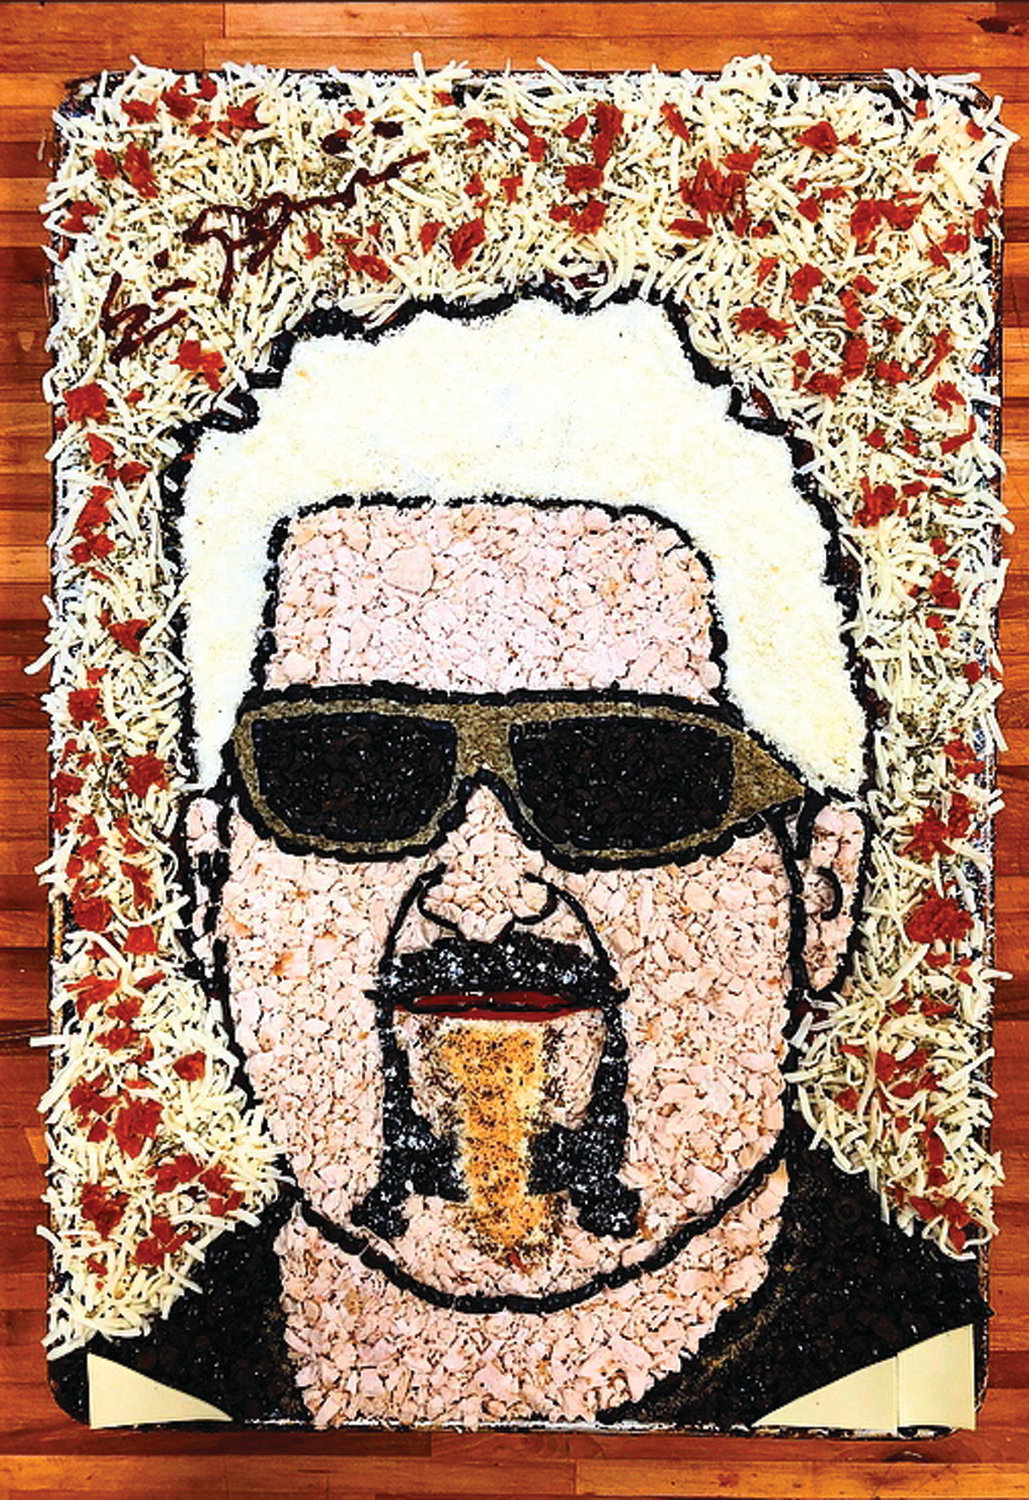 IN FLAVORTOWN: A portrait of Guy Fieri is one of Eric Palmieri's recent works of pizza art. He creates portrait pizzas for children, adults and even pets.